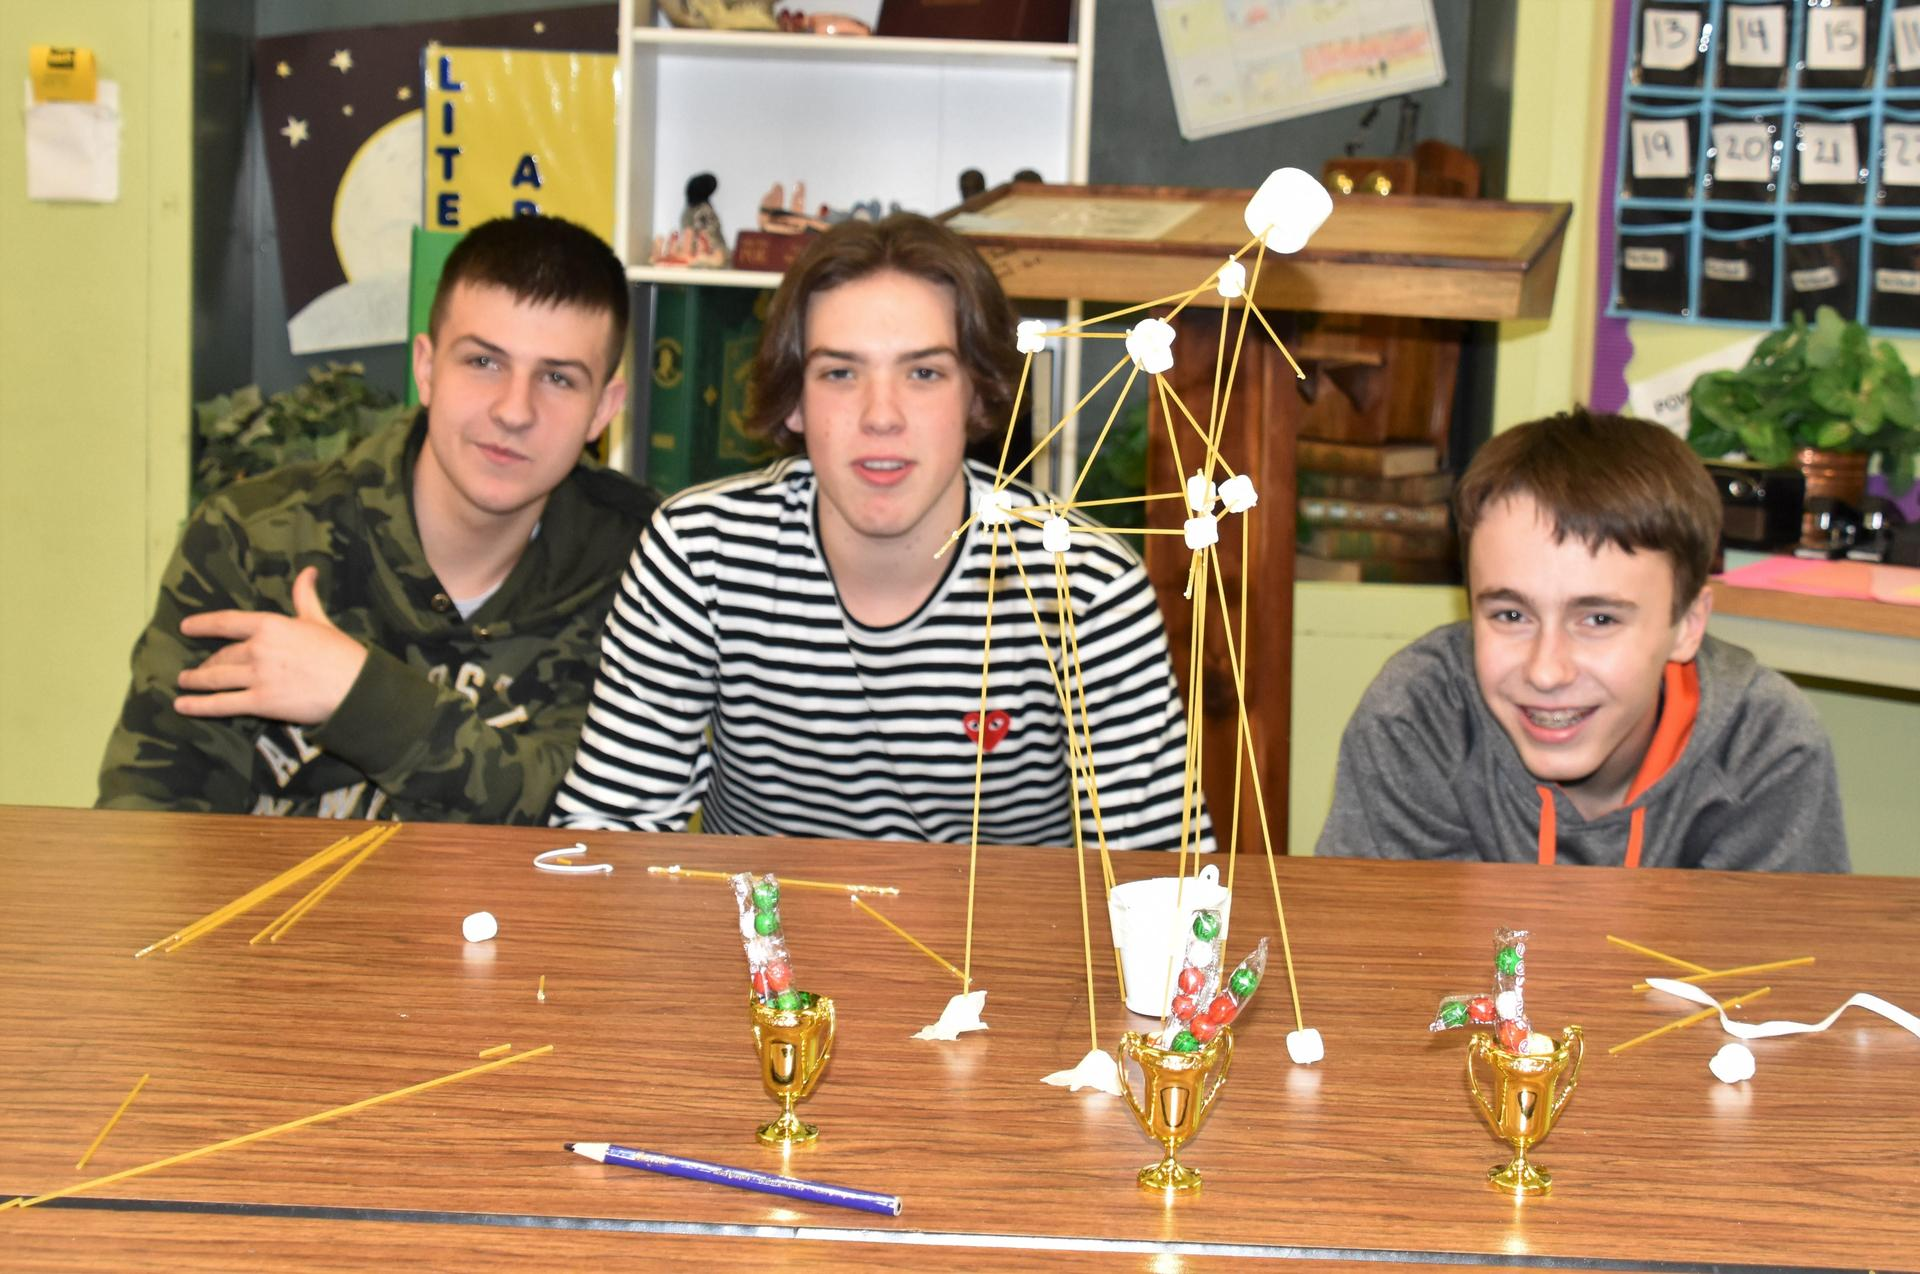 Winning team for building a tower out of sphagetti & marshmallows